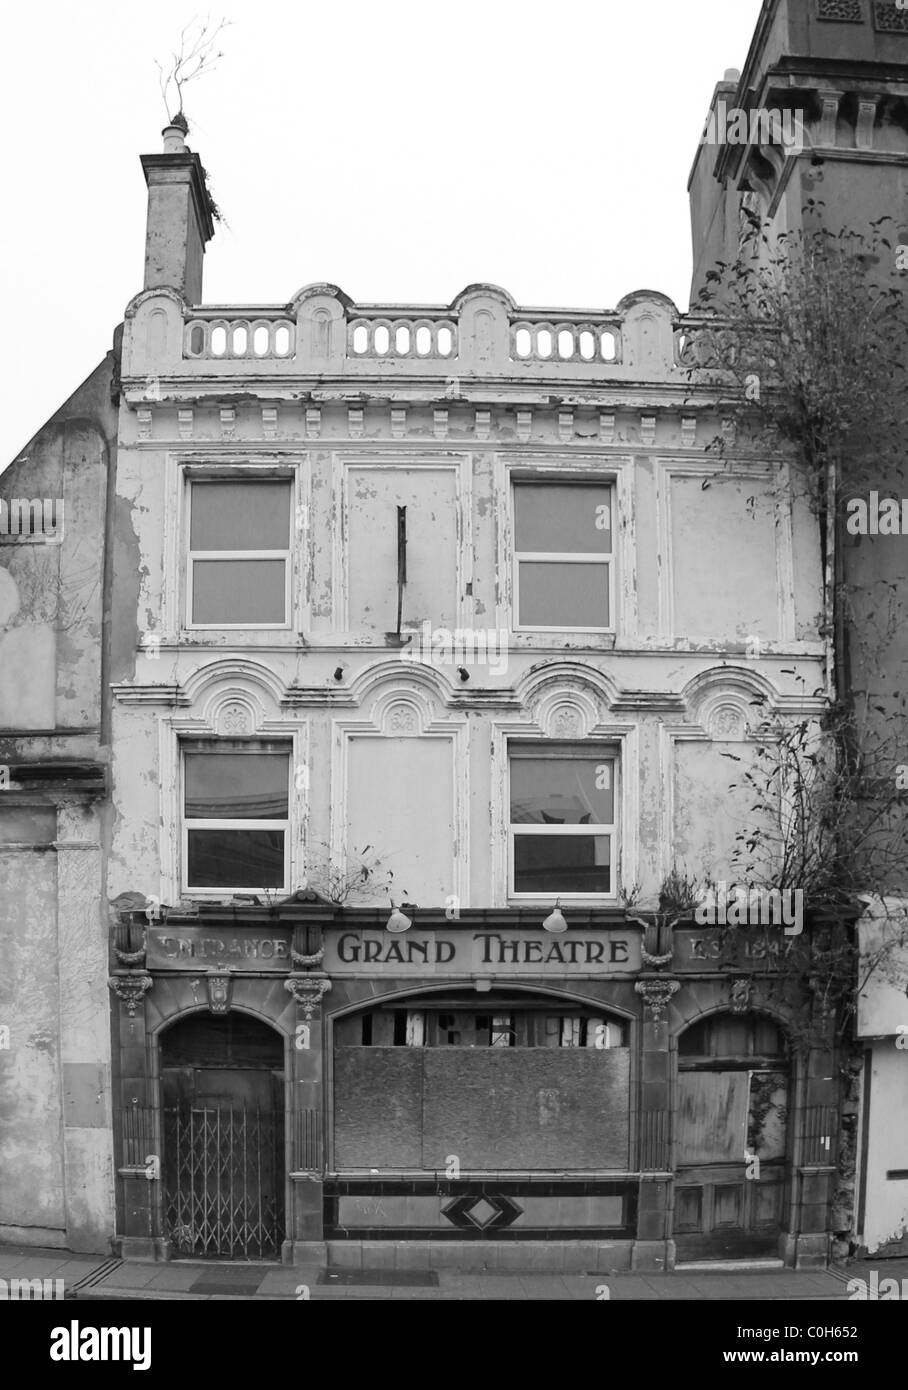 Union Street, Plymouth, Old Theatre - Stock Image